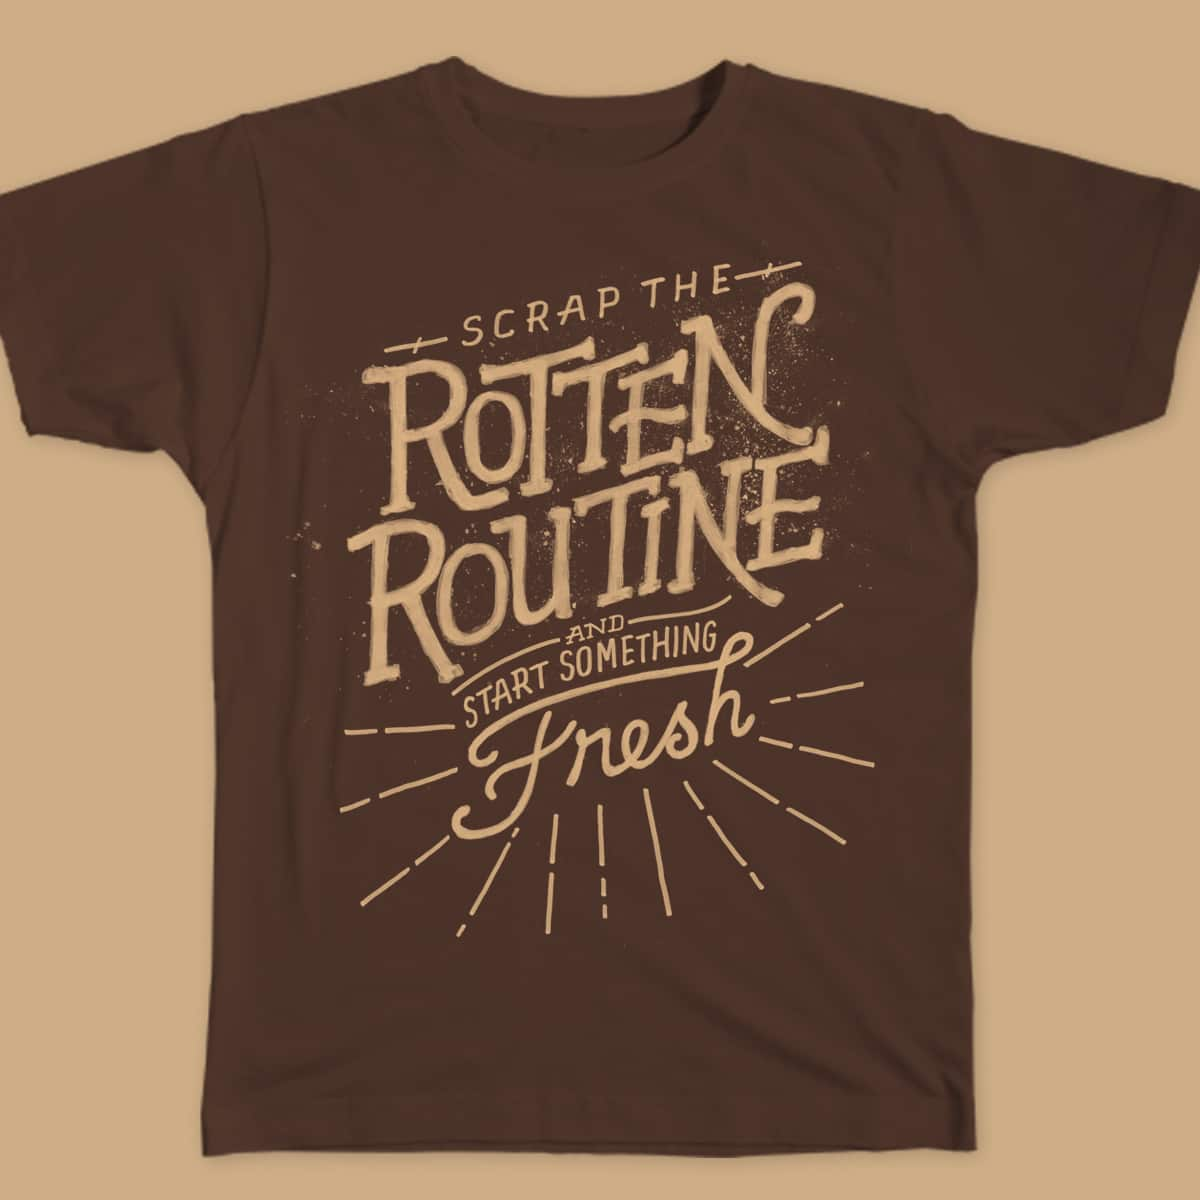 Scrap the Rotten Routine and Start Something Fresh by thebarngarage on Threadless